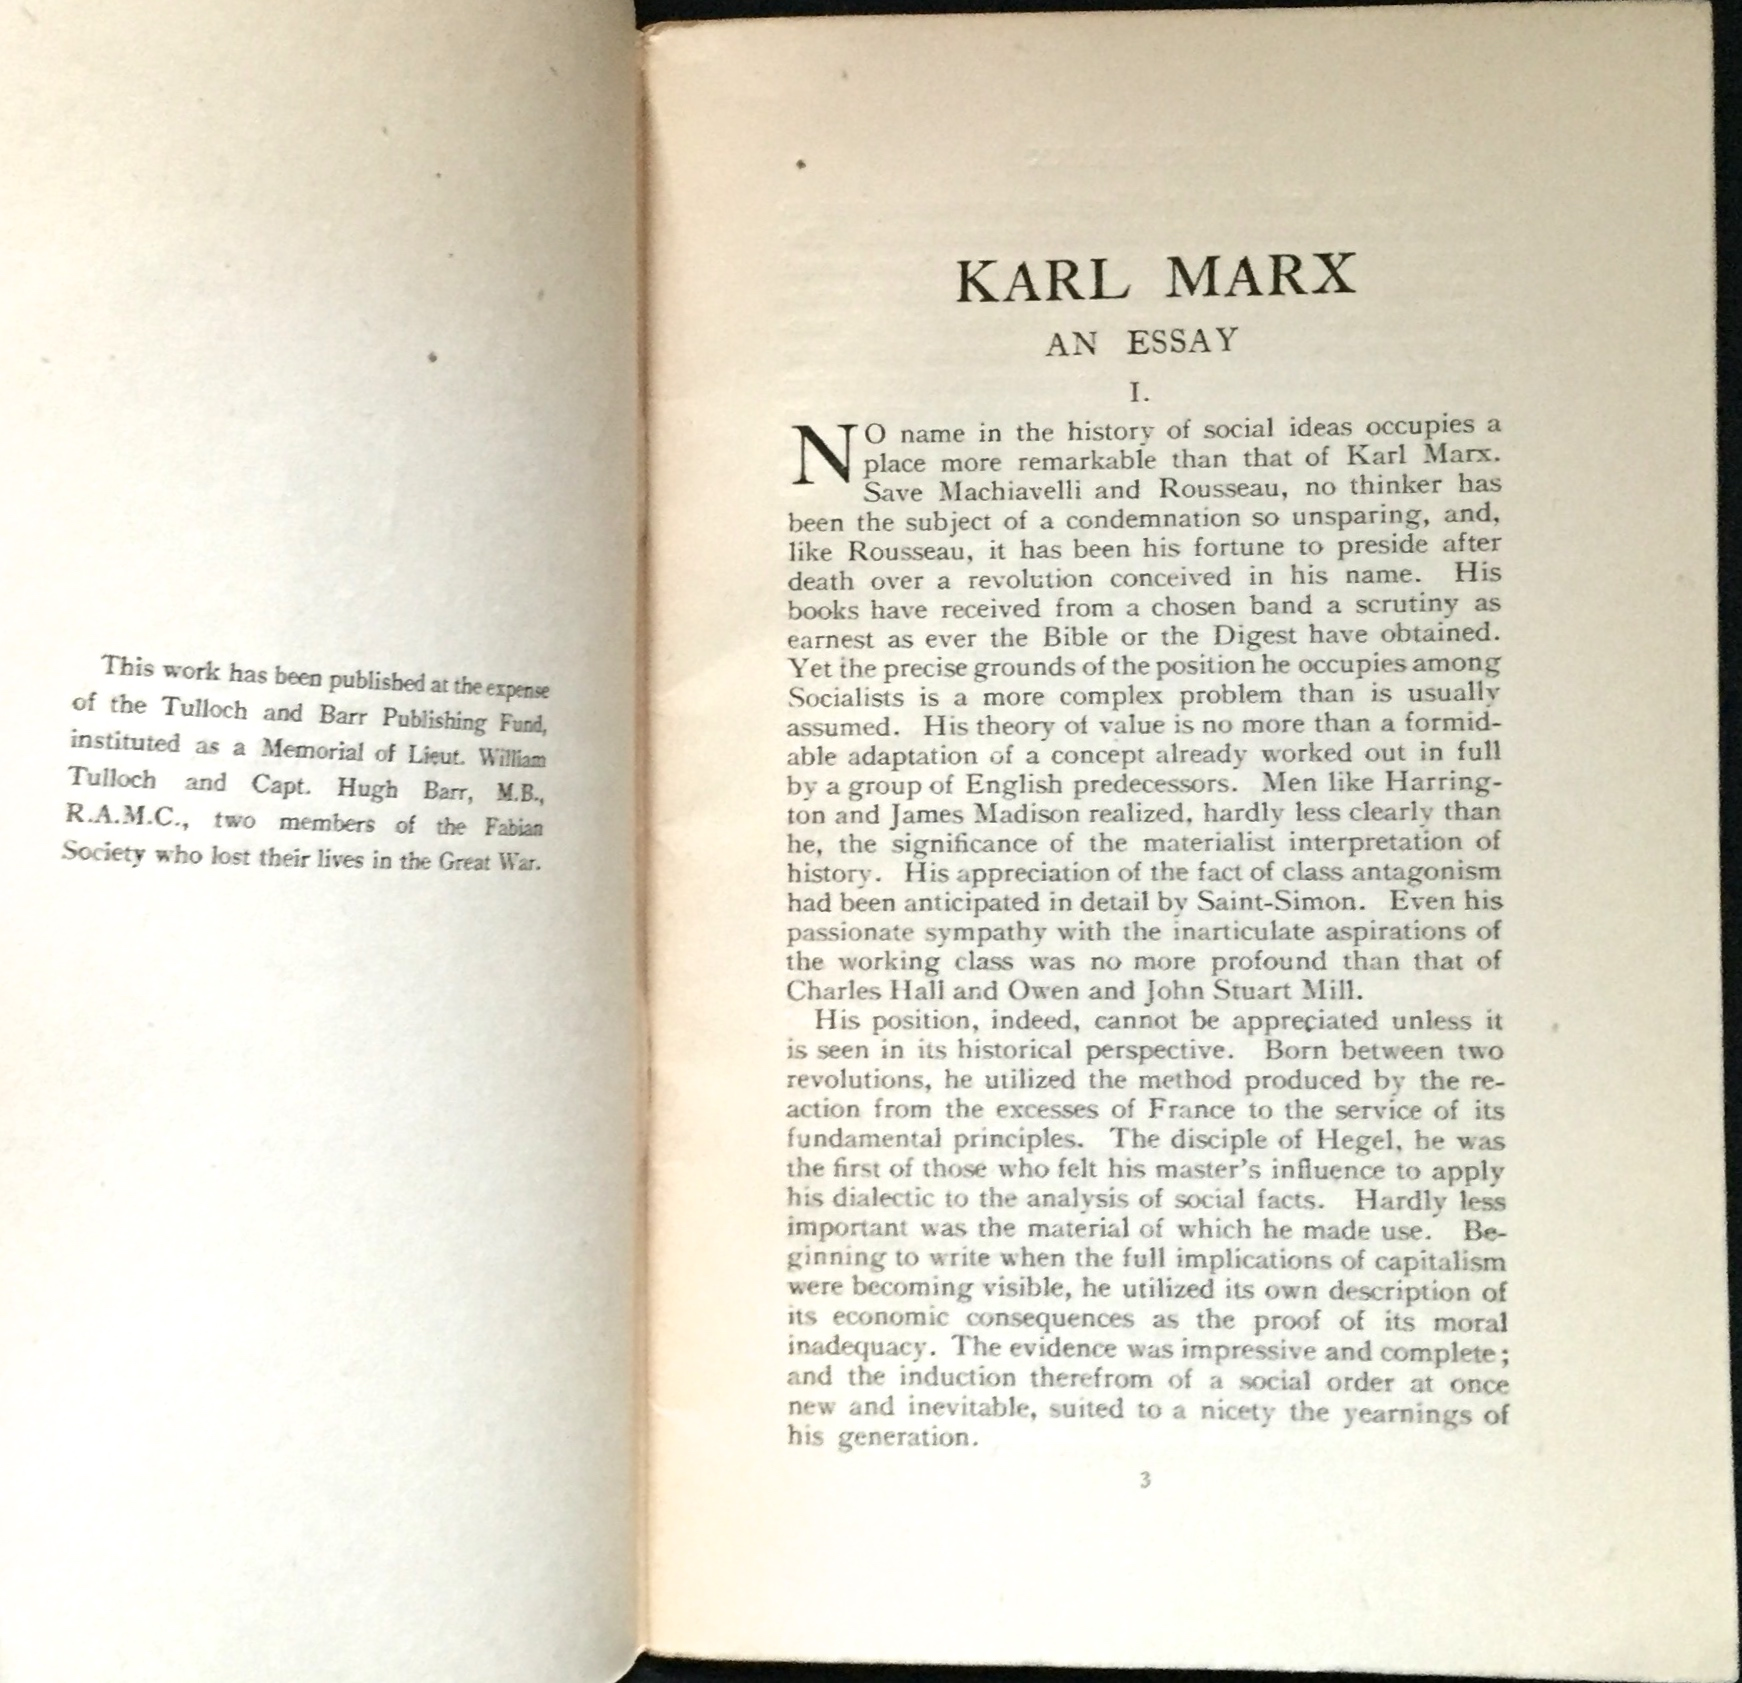 karl marx research essay Karl marx essaysthe most influential socialist thinker from the 19th century is karl marx karl marx can be considered a great philosopher, social scientist.